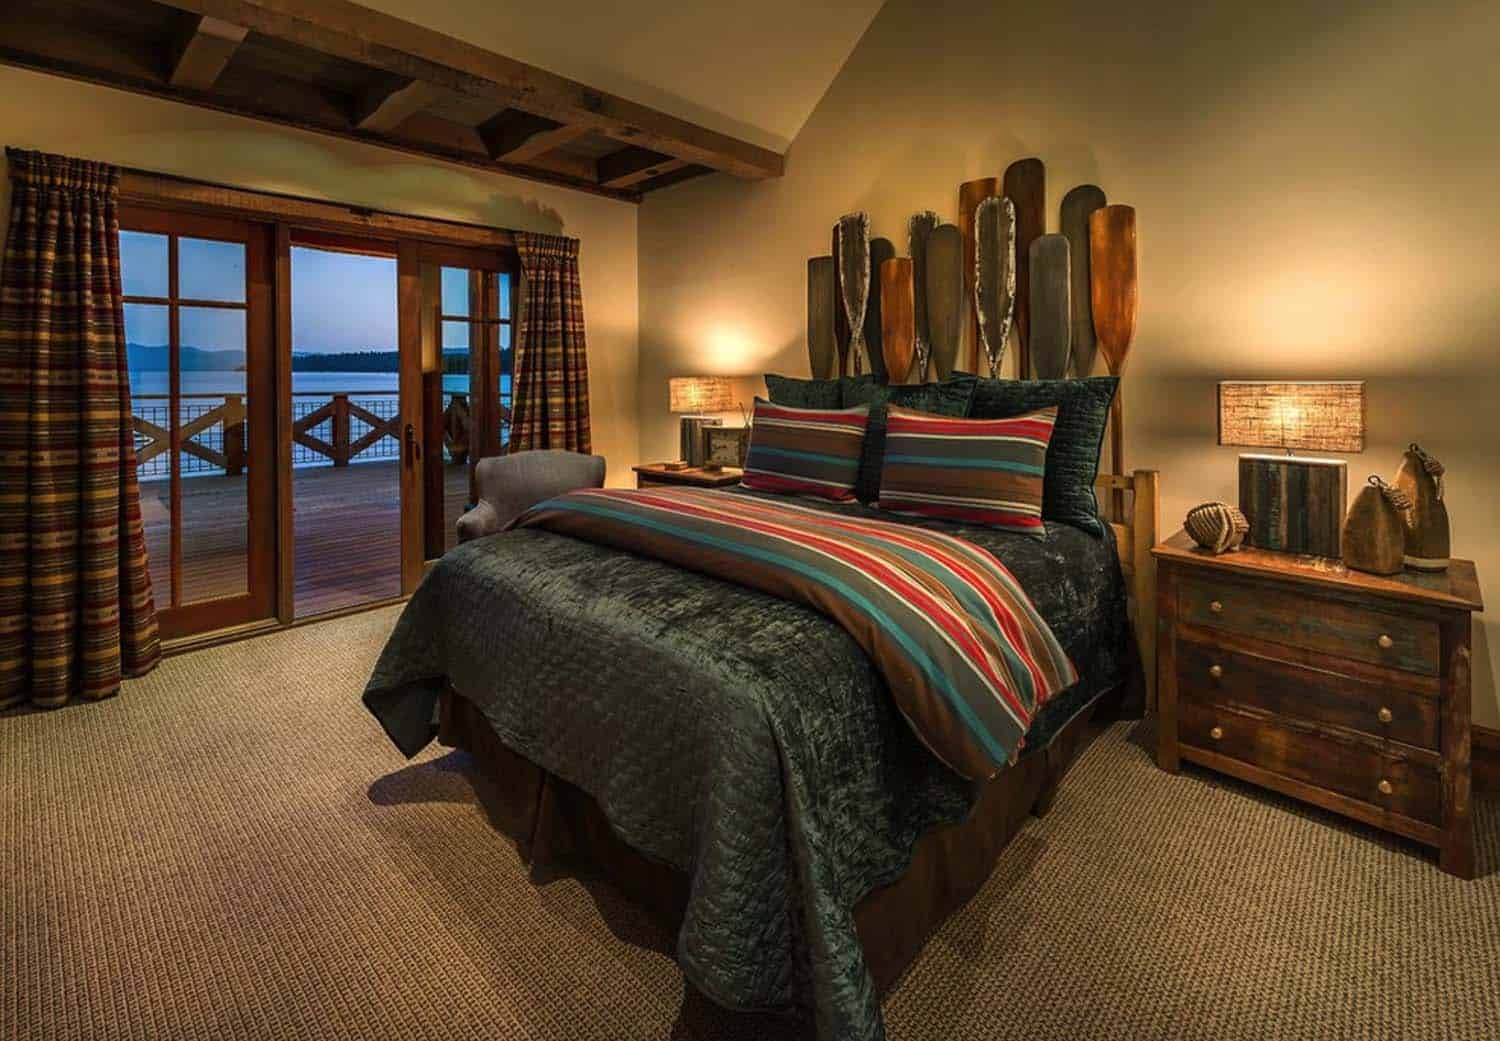 lake-house-rustic-bedroom